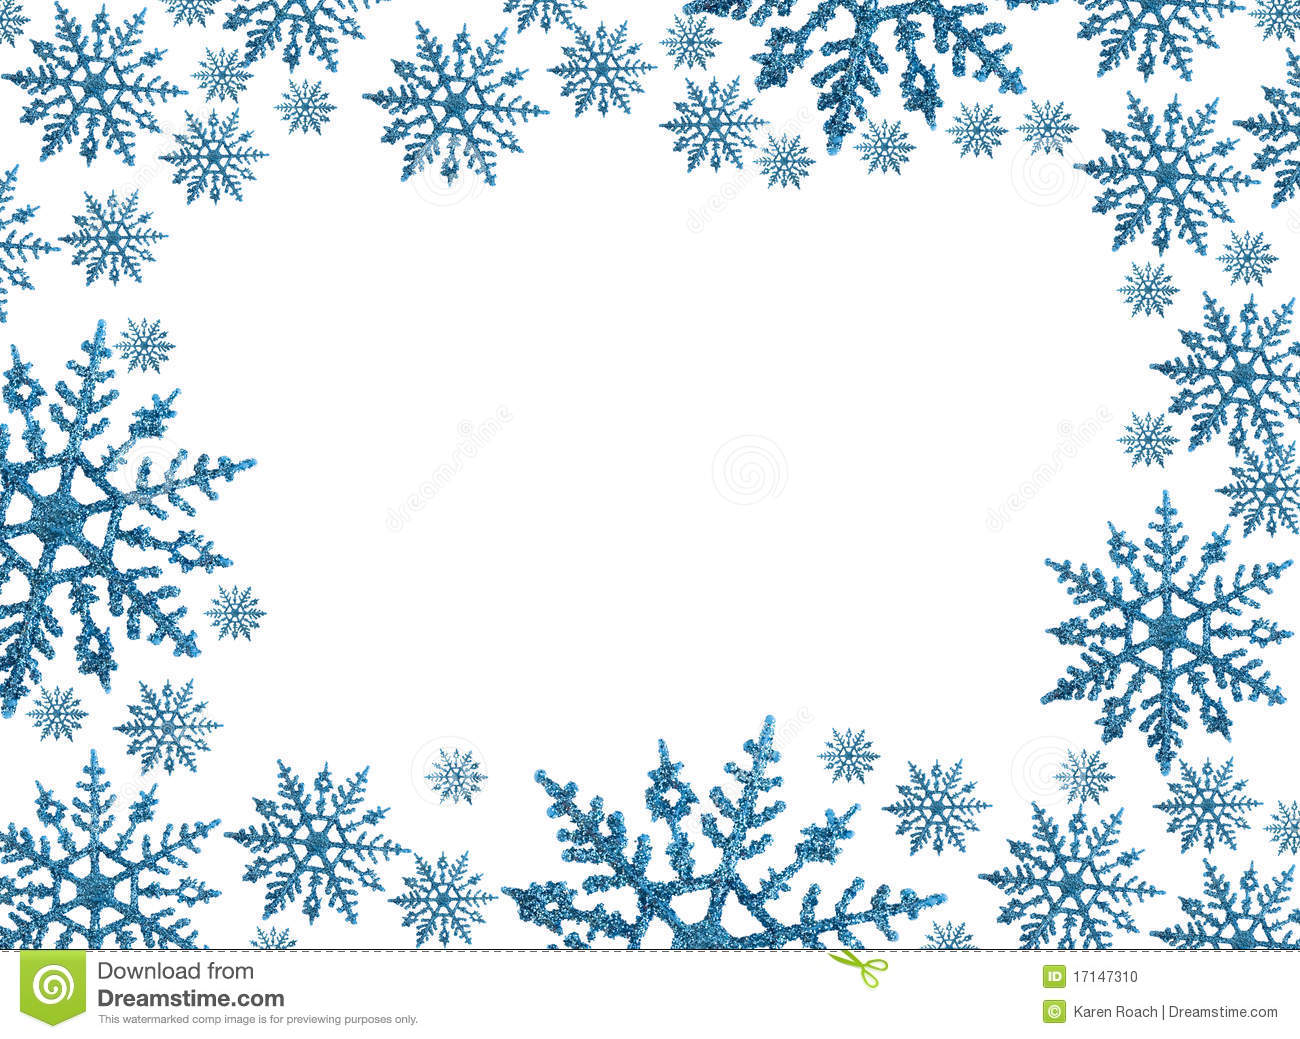 vector freeuse download Snowflake border look at. Snowflakes clipart borders